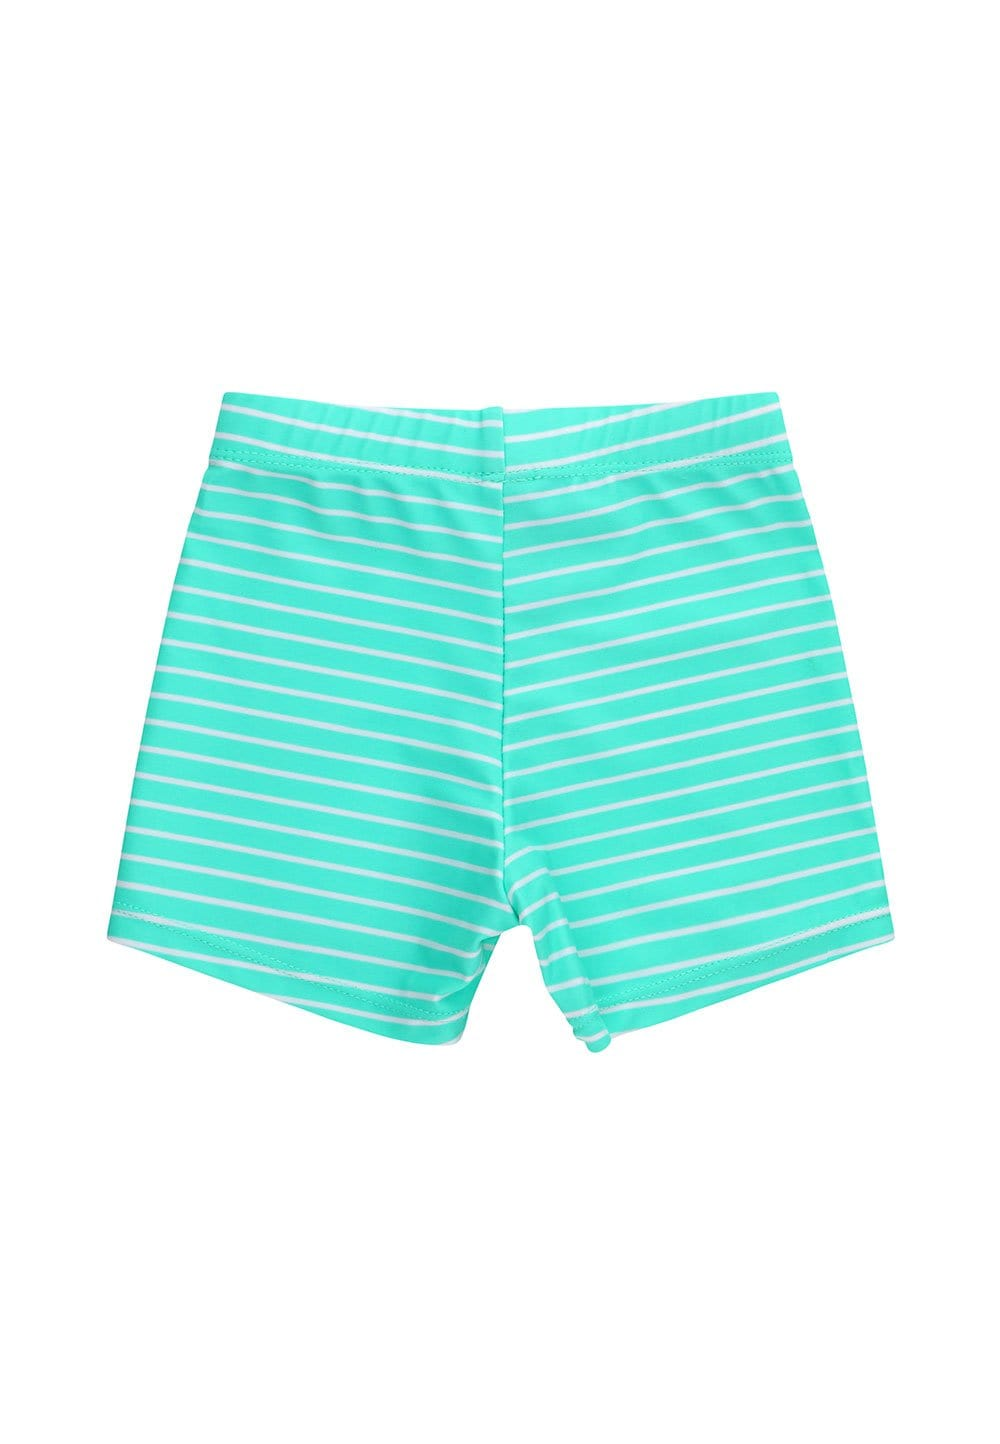 FUNFIT UPF50+ Junior Bottom (Unisex) in Bubblegum Print